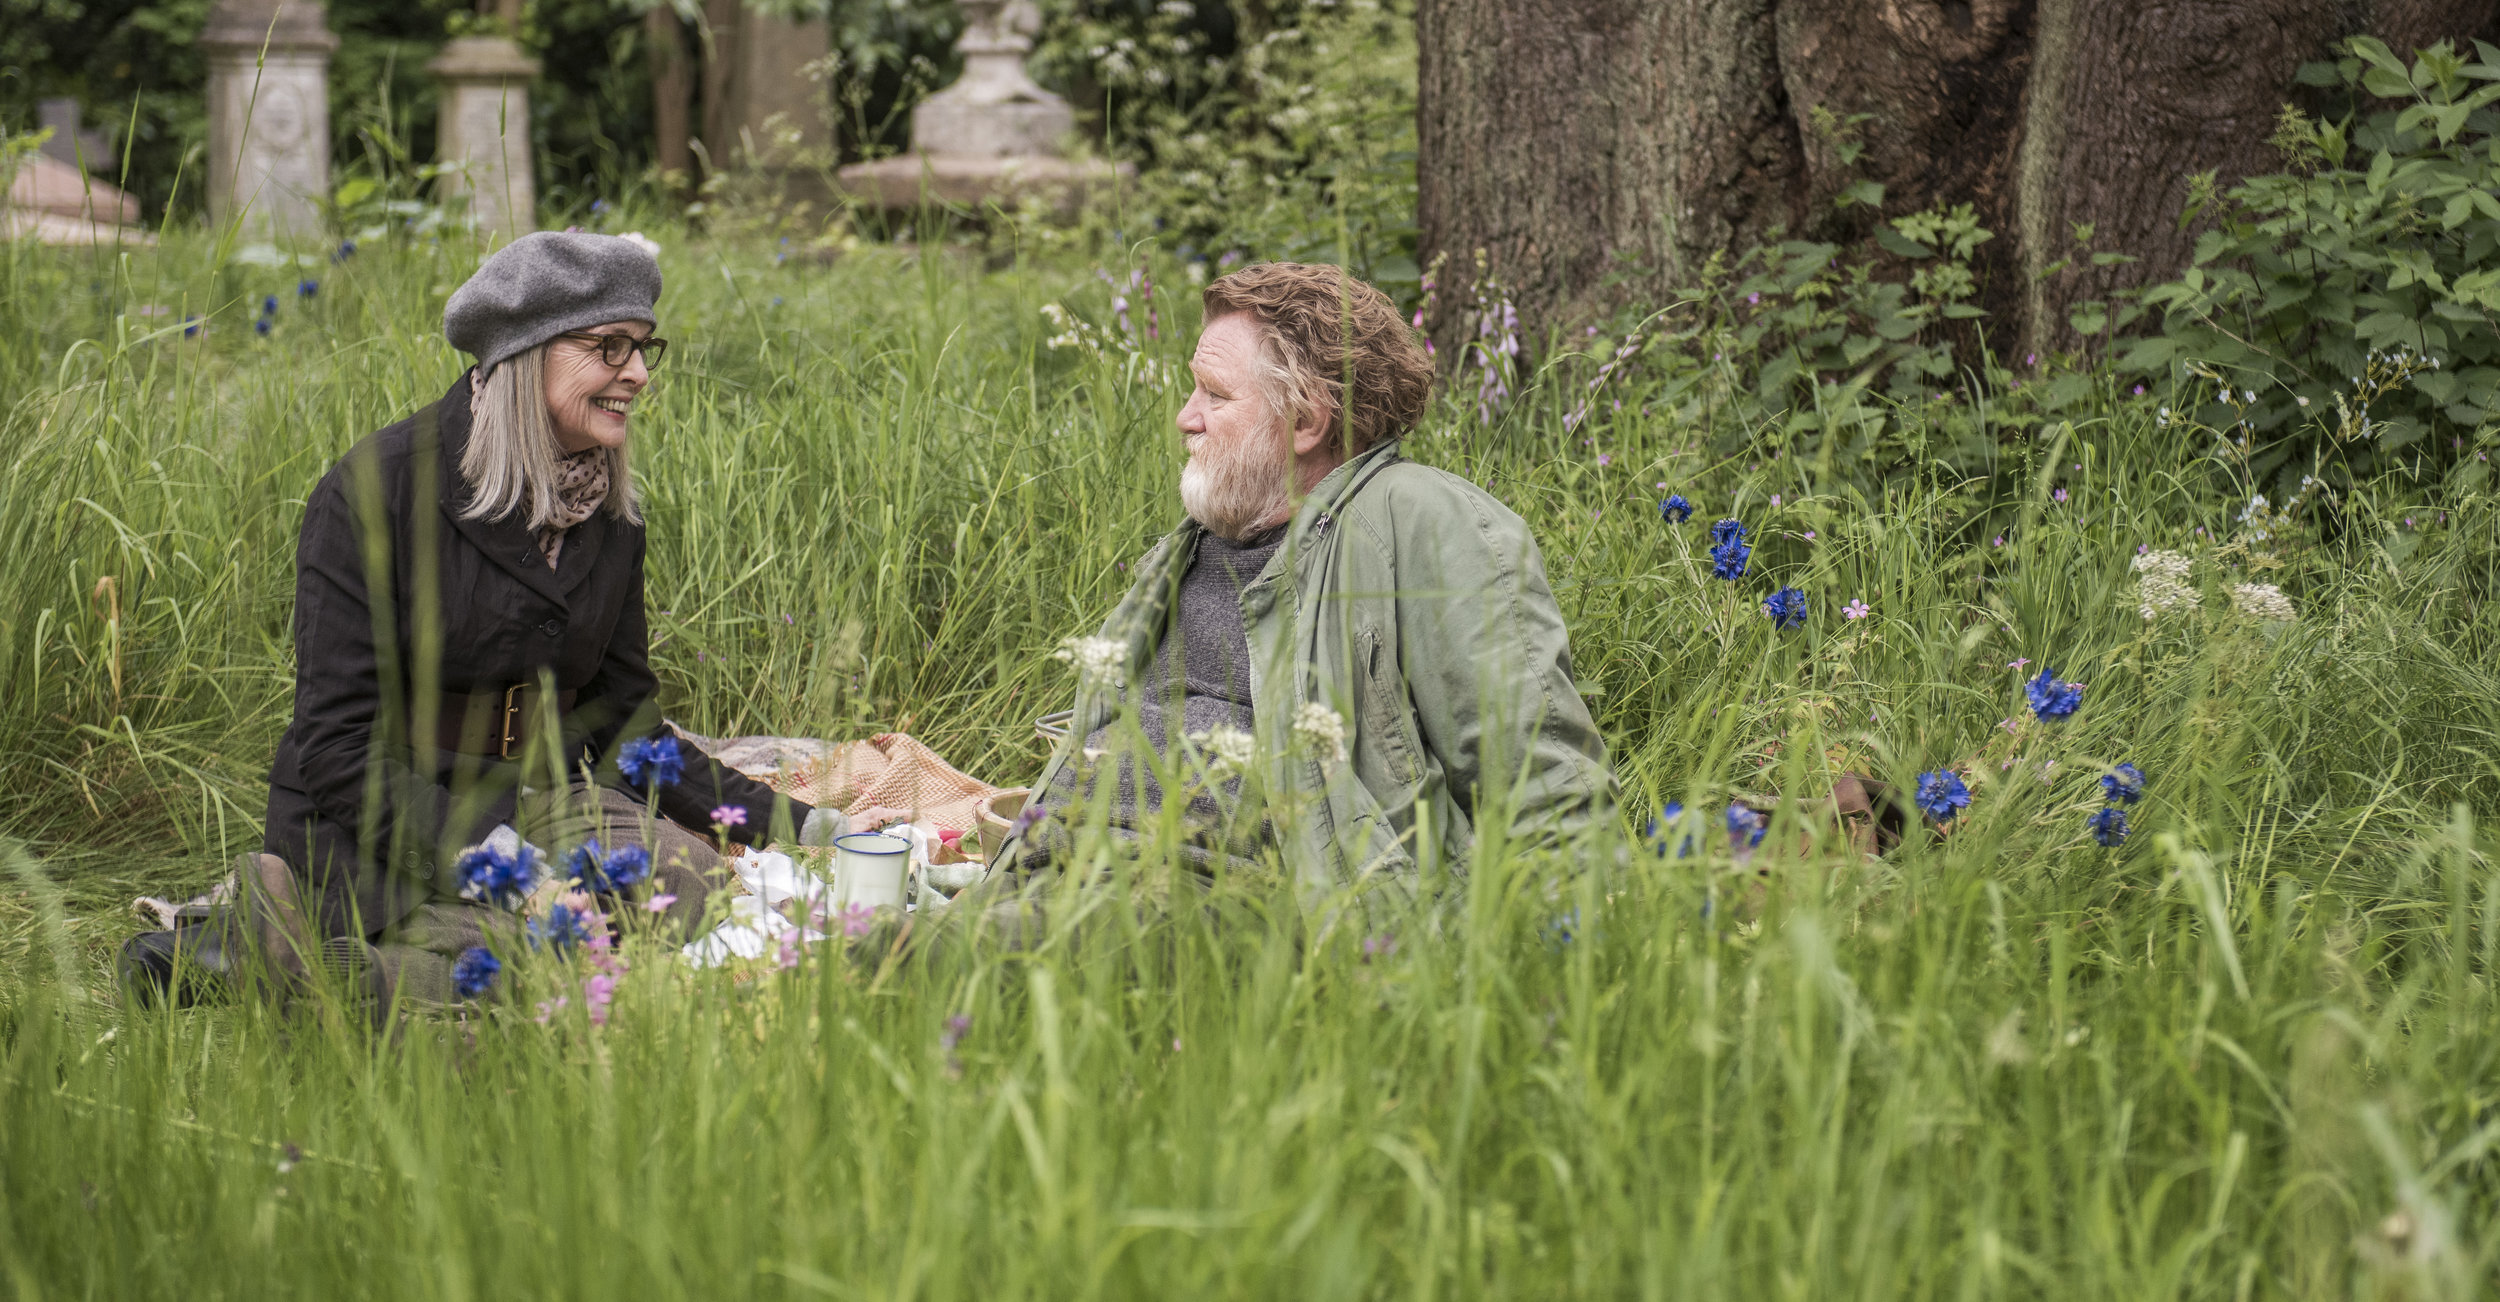 "Emily (Diane Keaton, left), an American widow in London, and Donald (Brendan Gleeson), who lives in a shack he built on park land, strike up an unlikely friendship in the romance ""Hampstead."" (Photo by Nick Wall, courtesy of IFC Films.)"